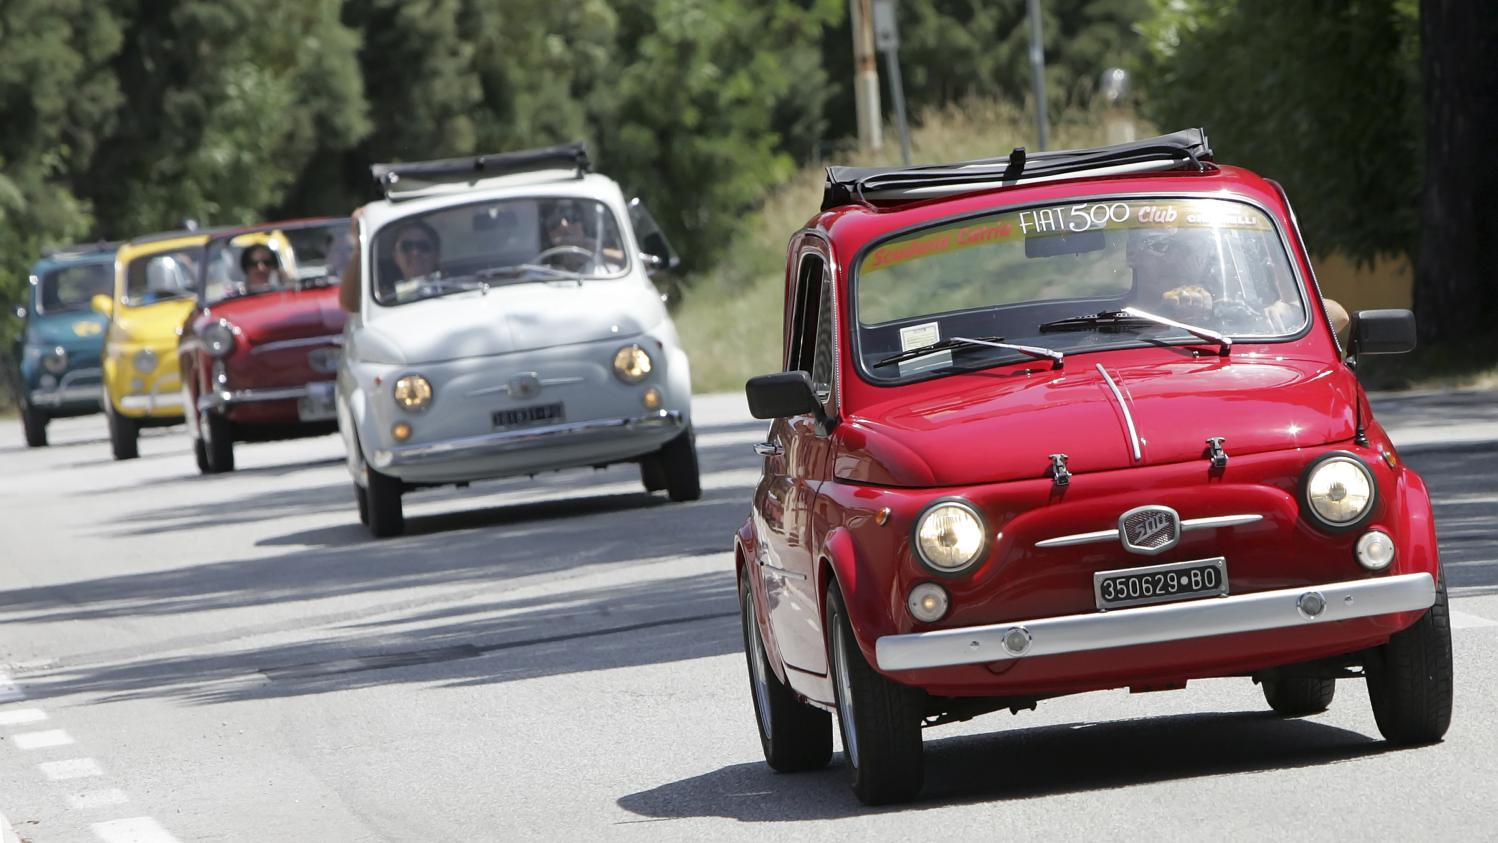 Fiat 500 en collection sa cote s 39 envole - Comptoir de la voiture de collection ...